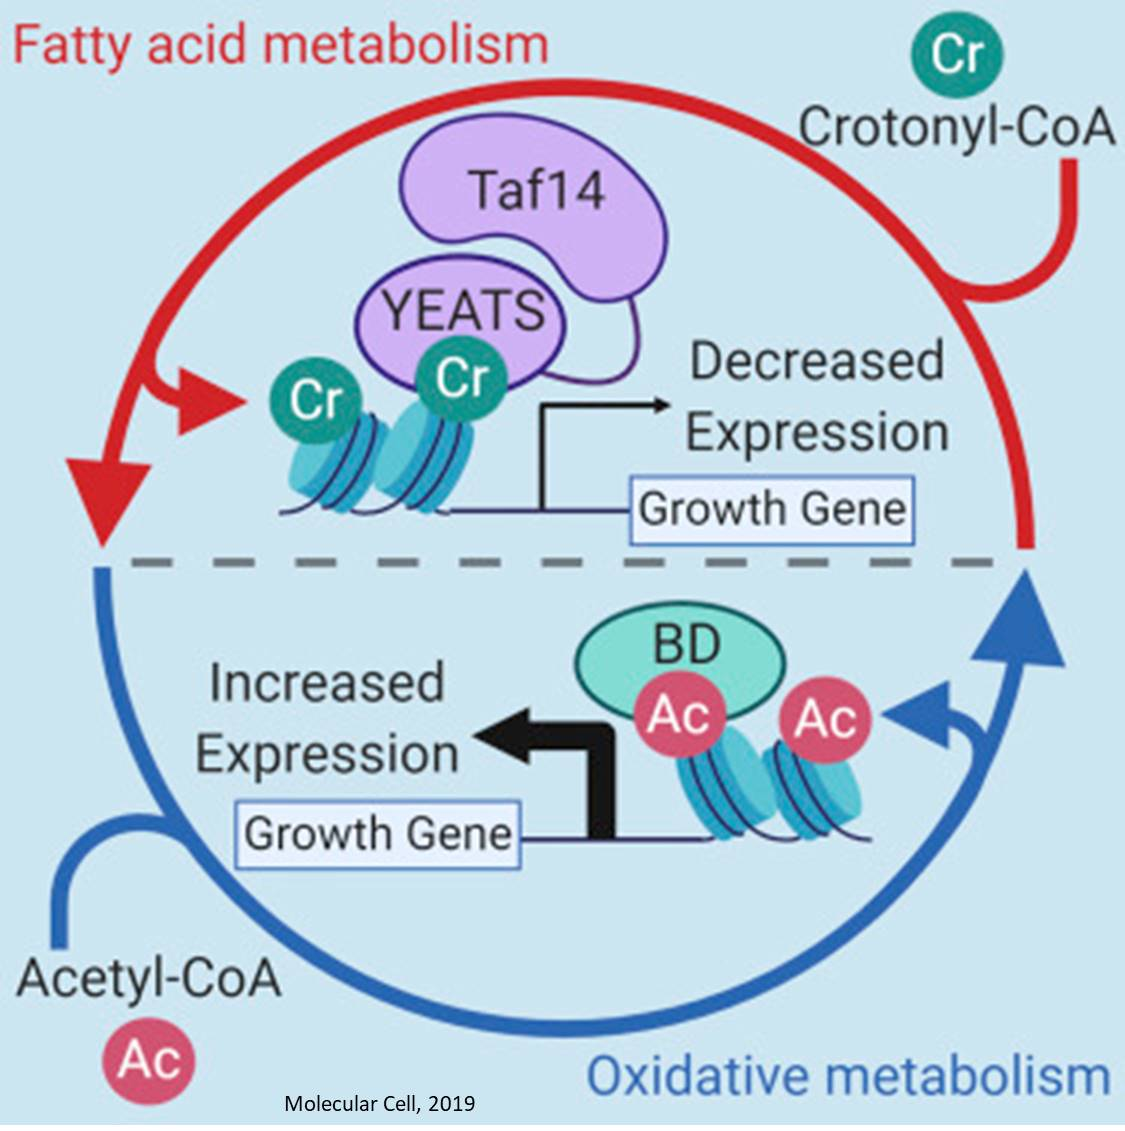 Cell adaptation to nutrients is controlled through histone crtonylation